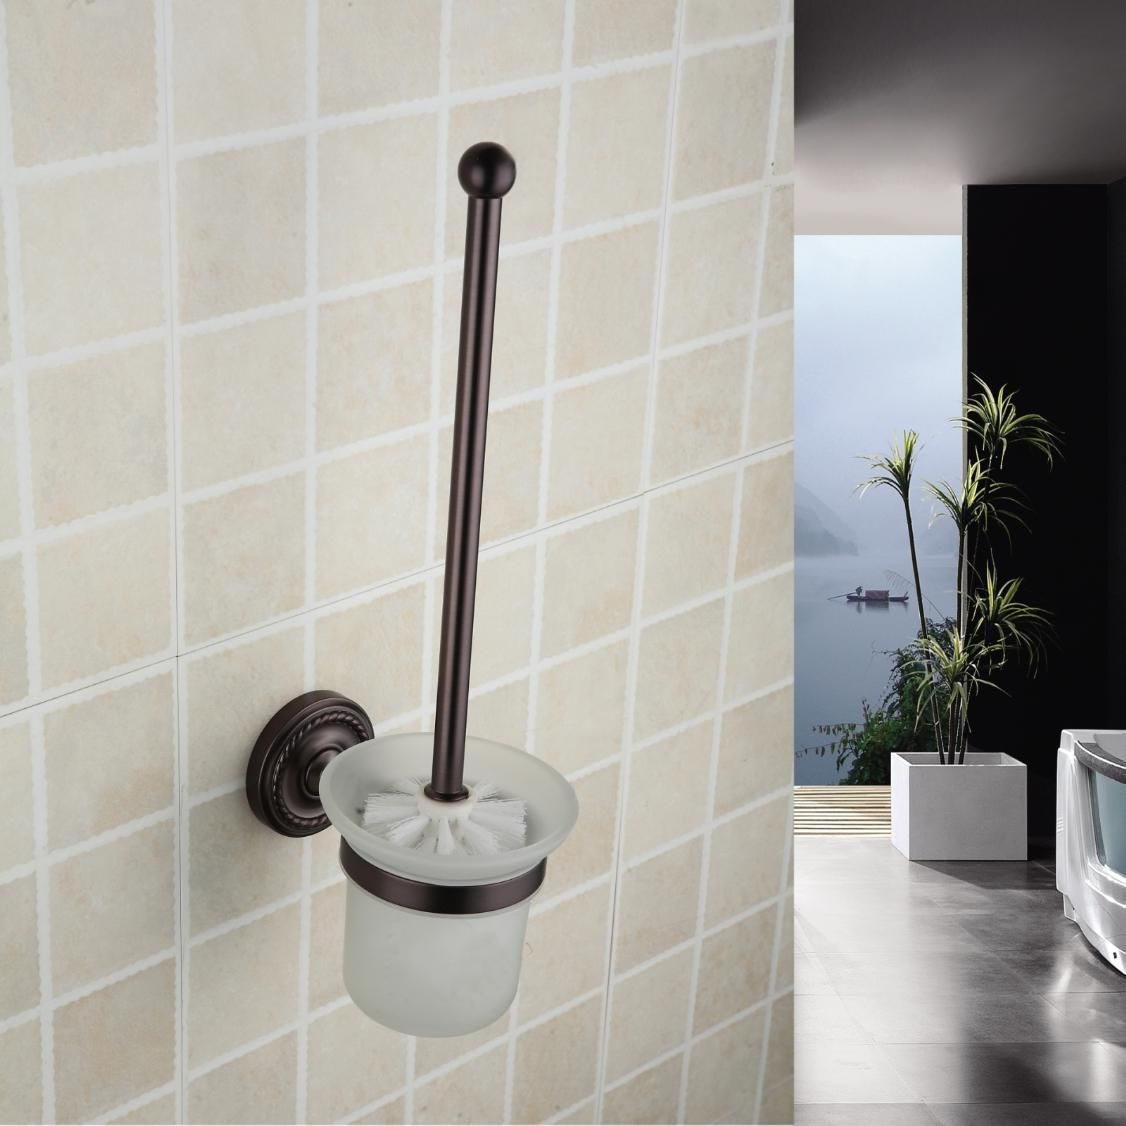 Oil Rubbed Bronze Wall Mounted Wall Mounted Toilet Brush Holder